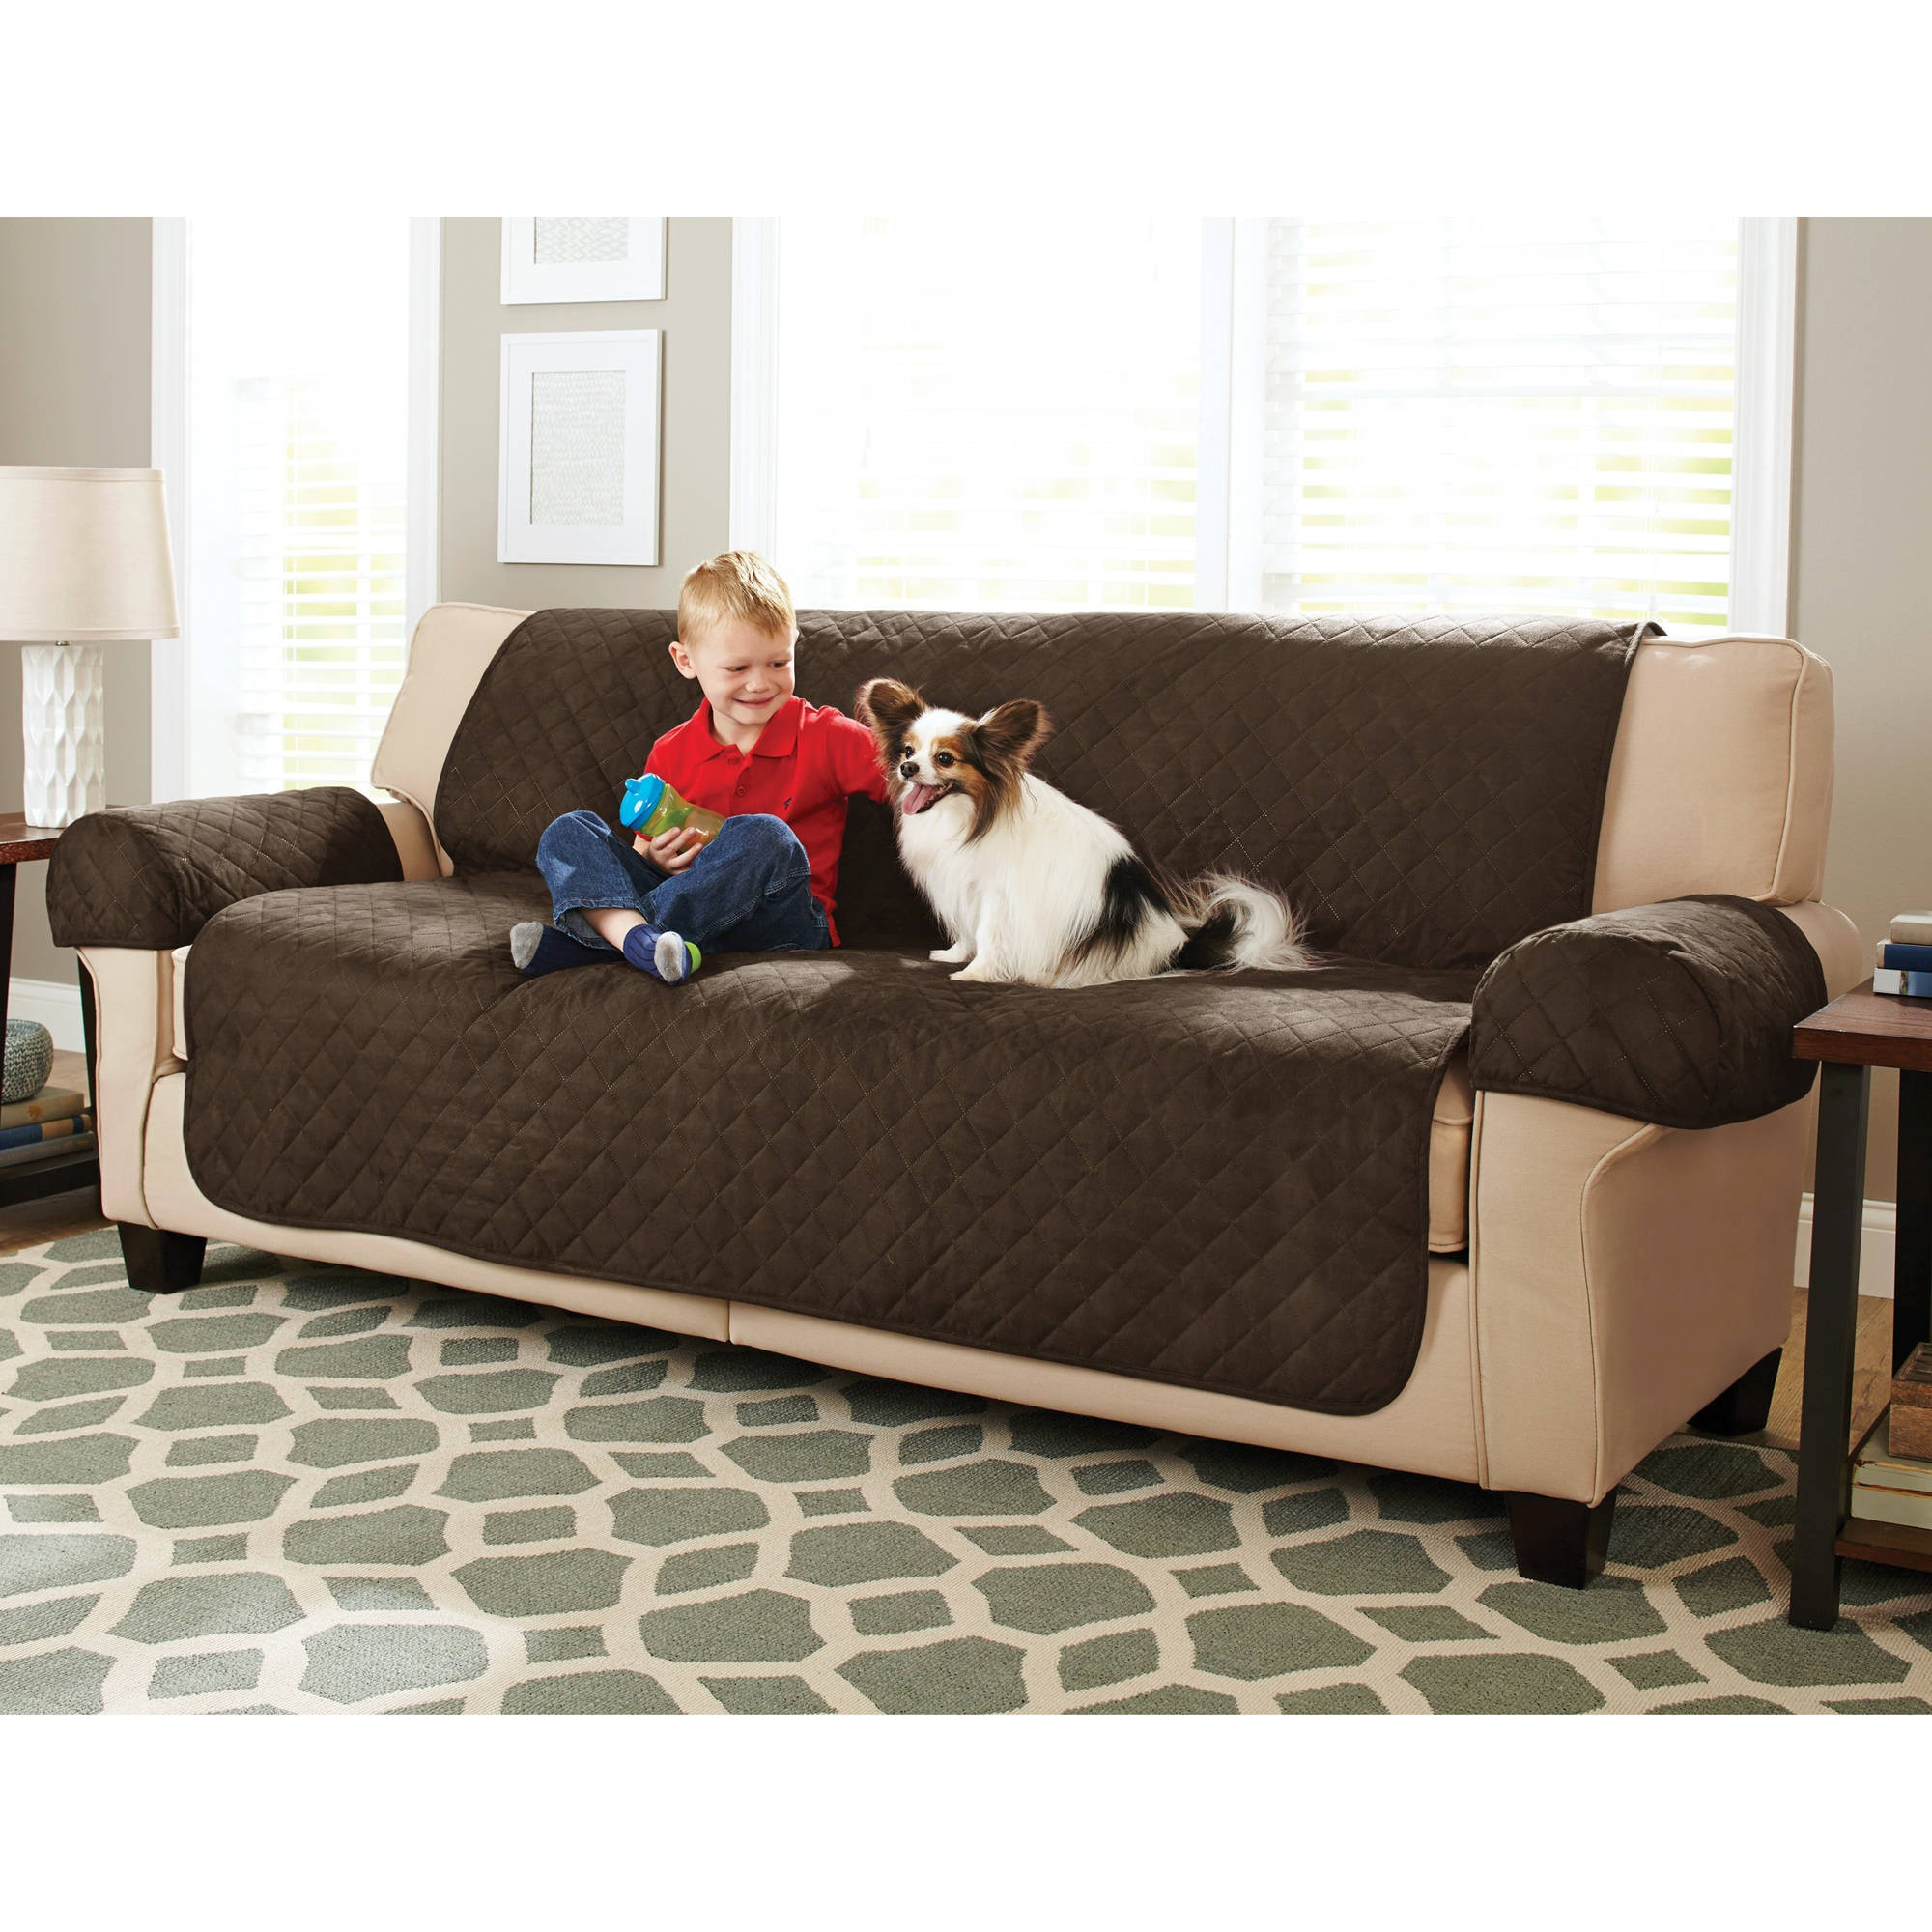 Sofa Couch Covers Contemporary Awesome Couch Covers for Your sofas and Couches Ideas with Architecture